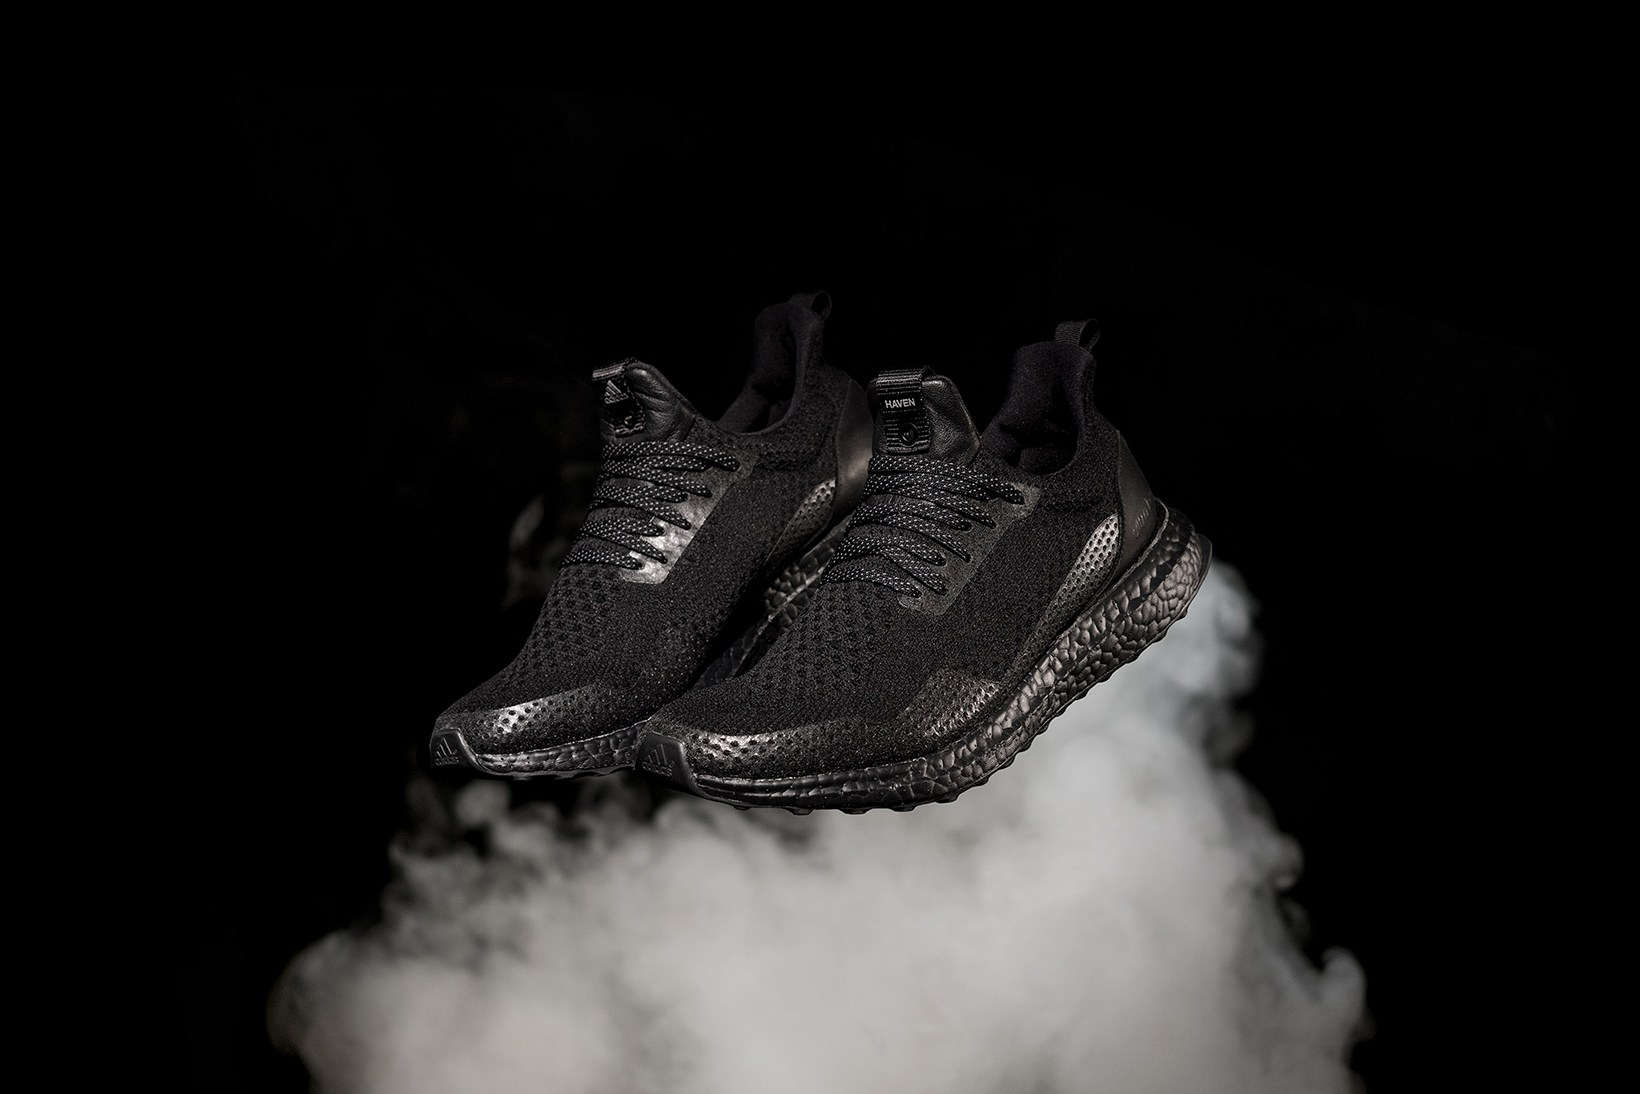 HAVEN x Adidas Consortium offrent une sublime « Triple Black » UltraBOOST